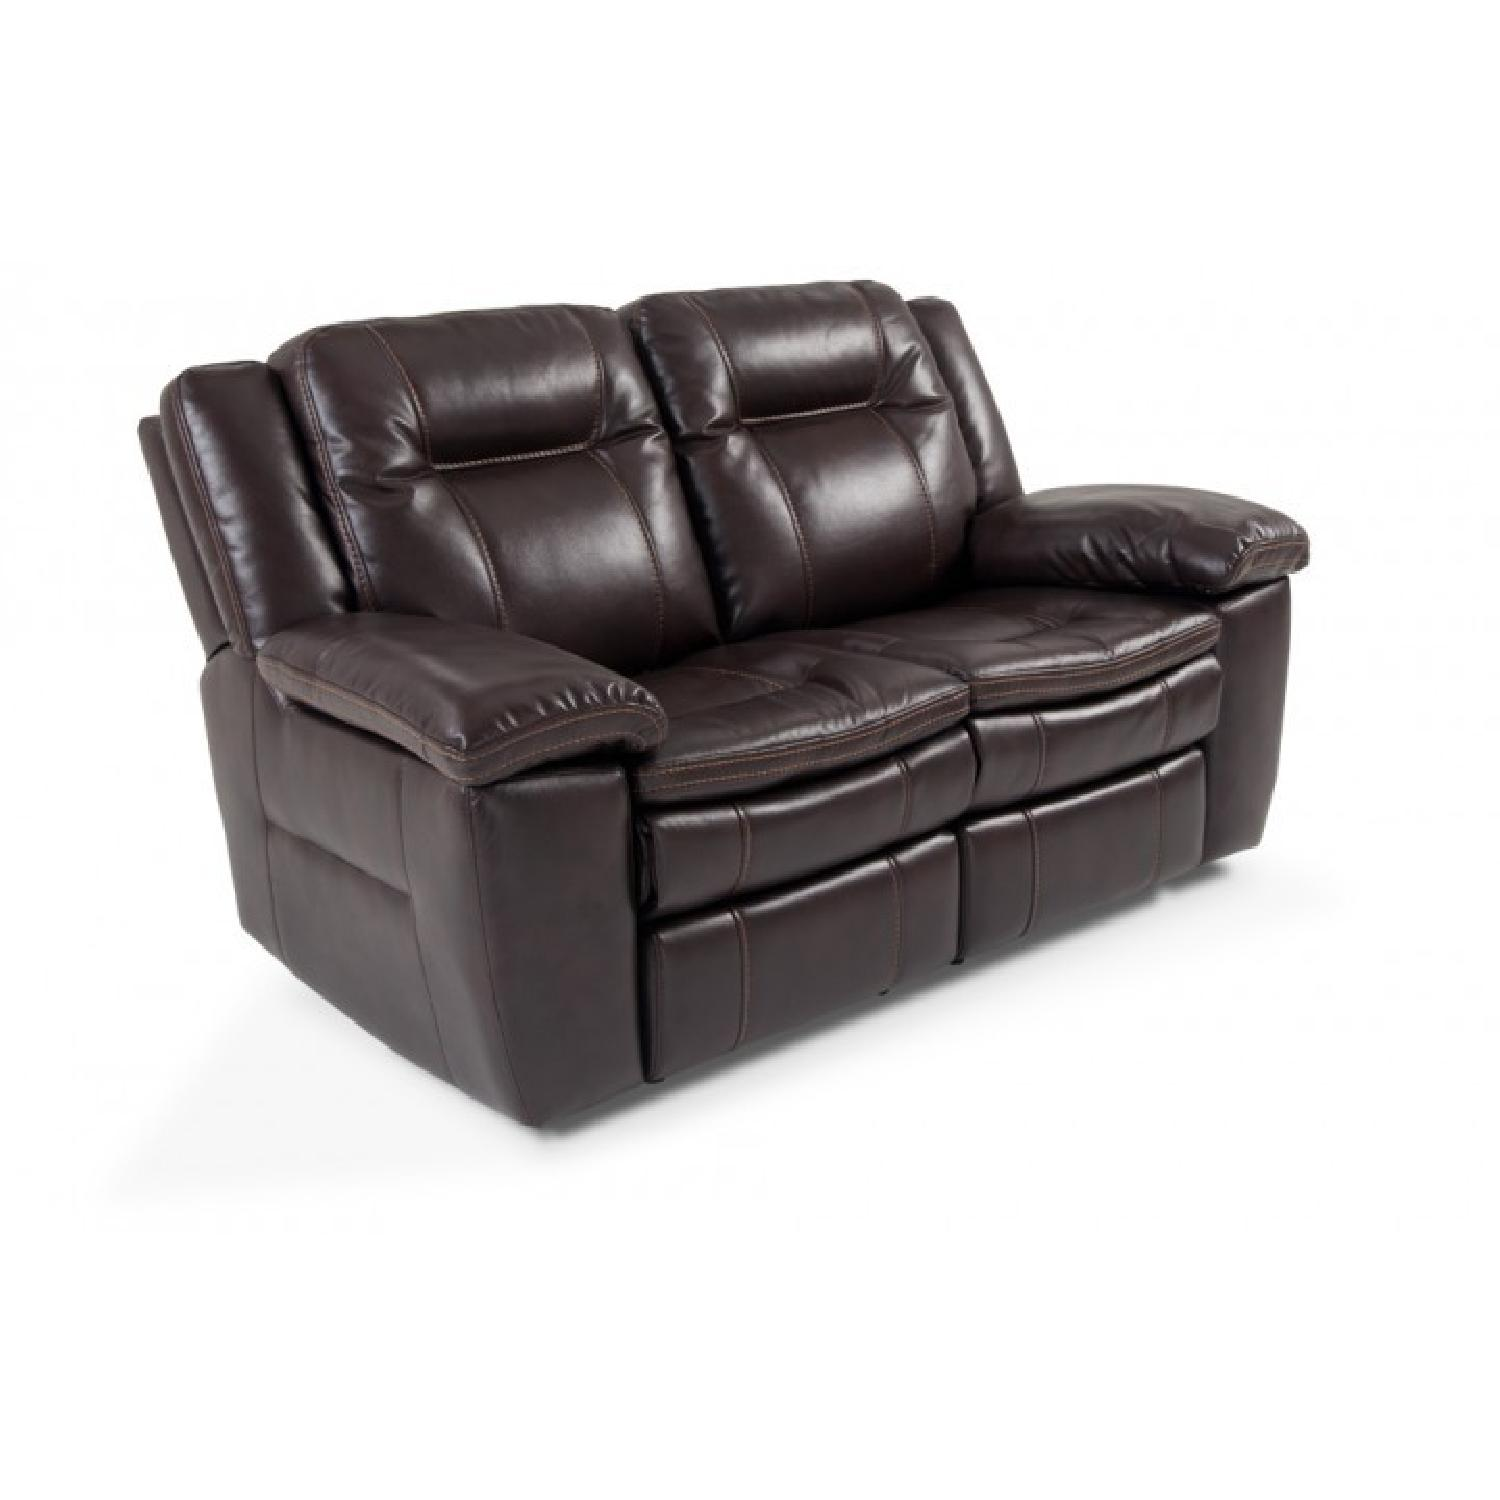 Bobs Grand Prix Power Reclining Loveseat